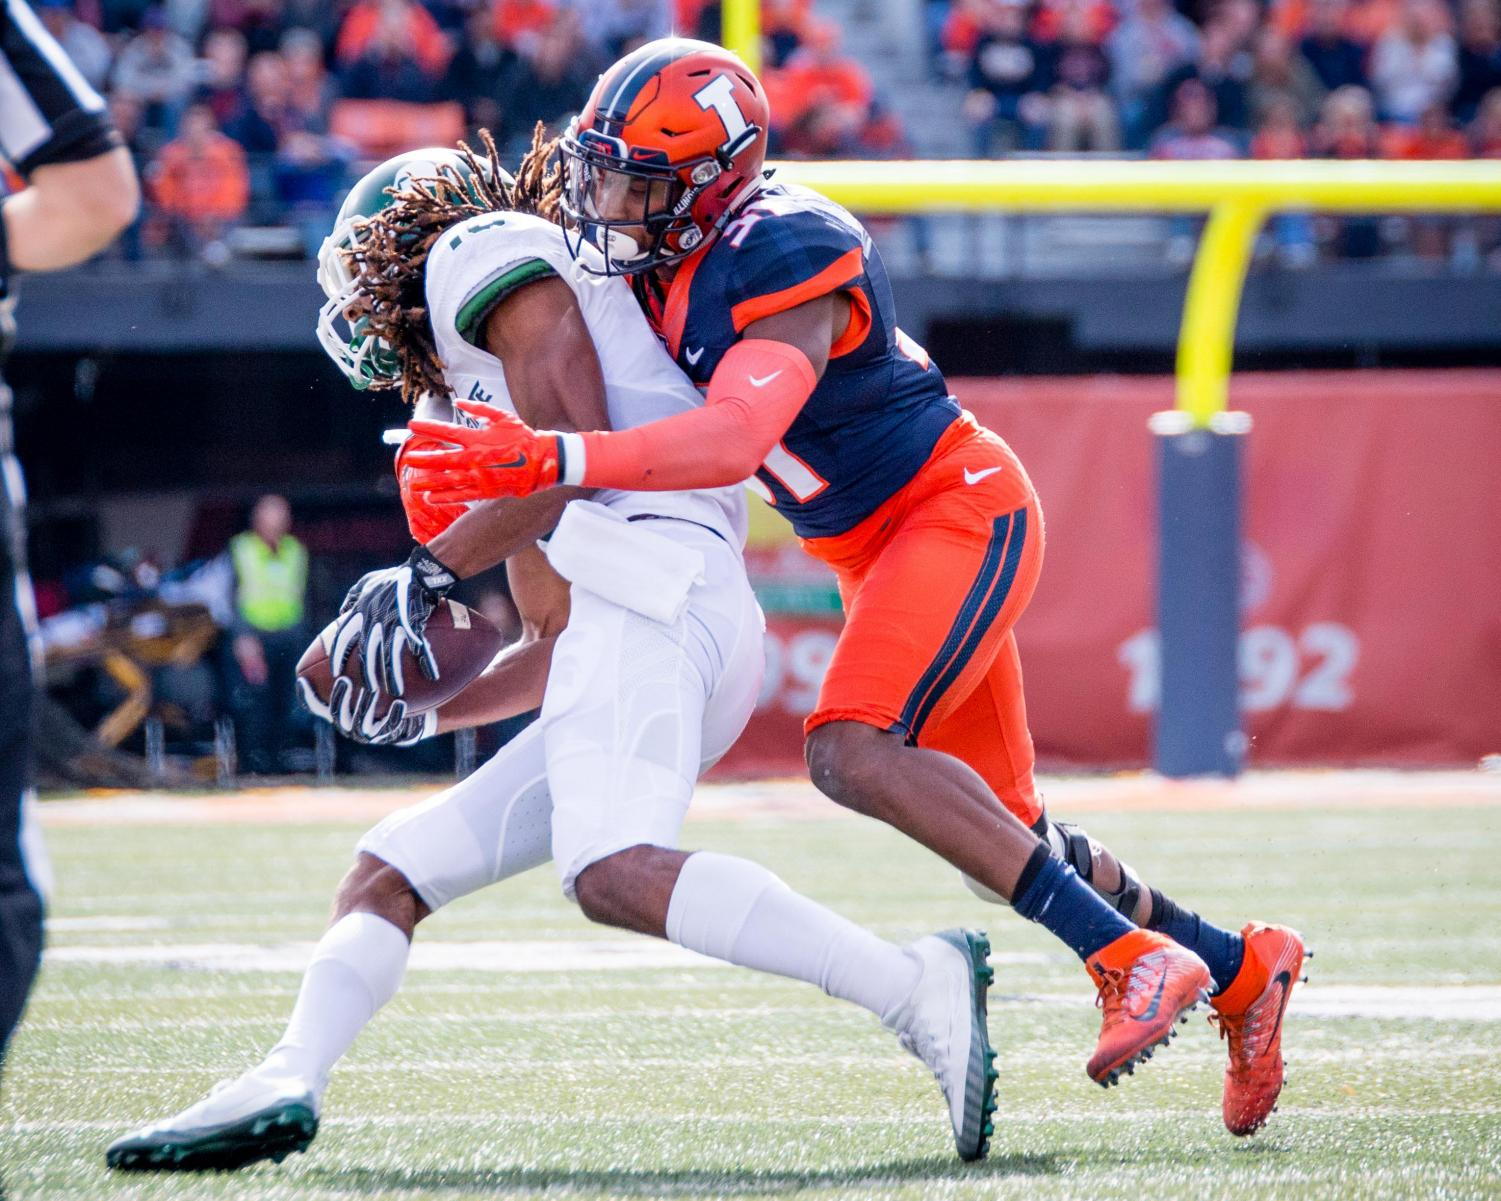 Illini safety Patrick Nelson becomes fourth player to transfer